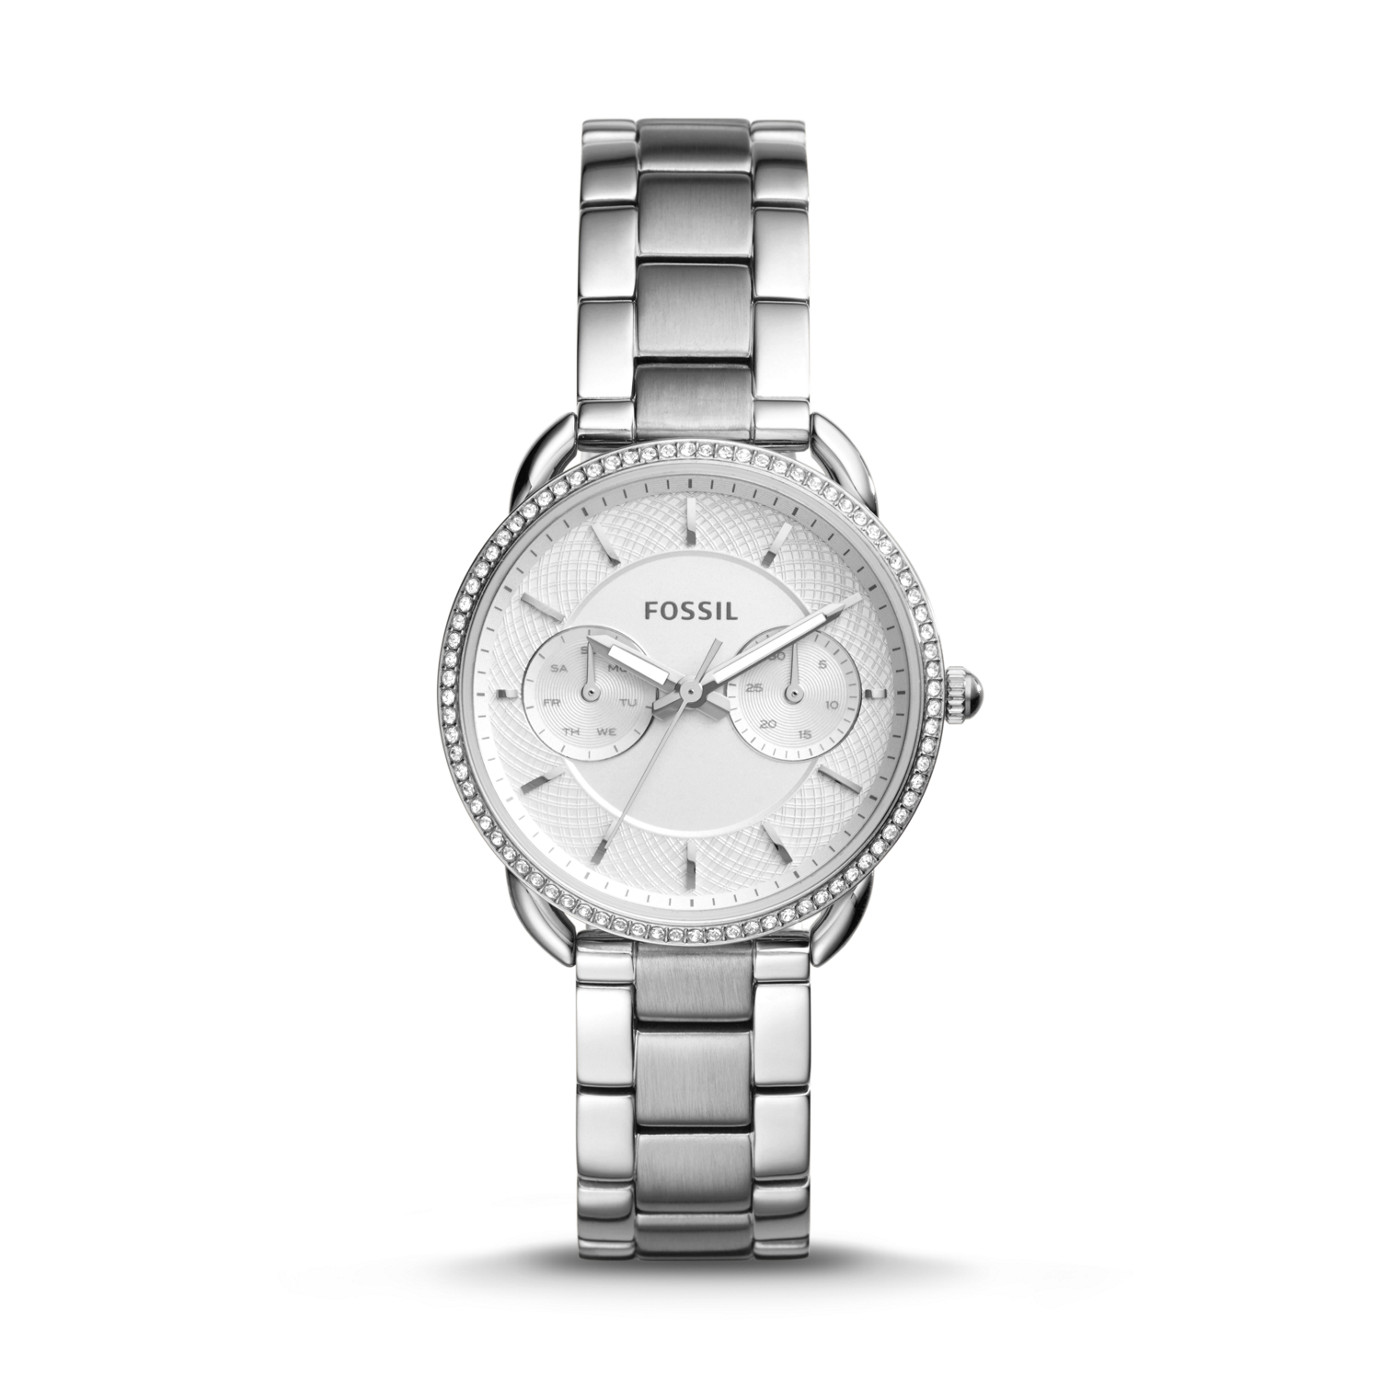 Tailor Multifunction Stainless Steel Watch